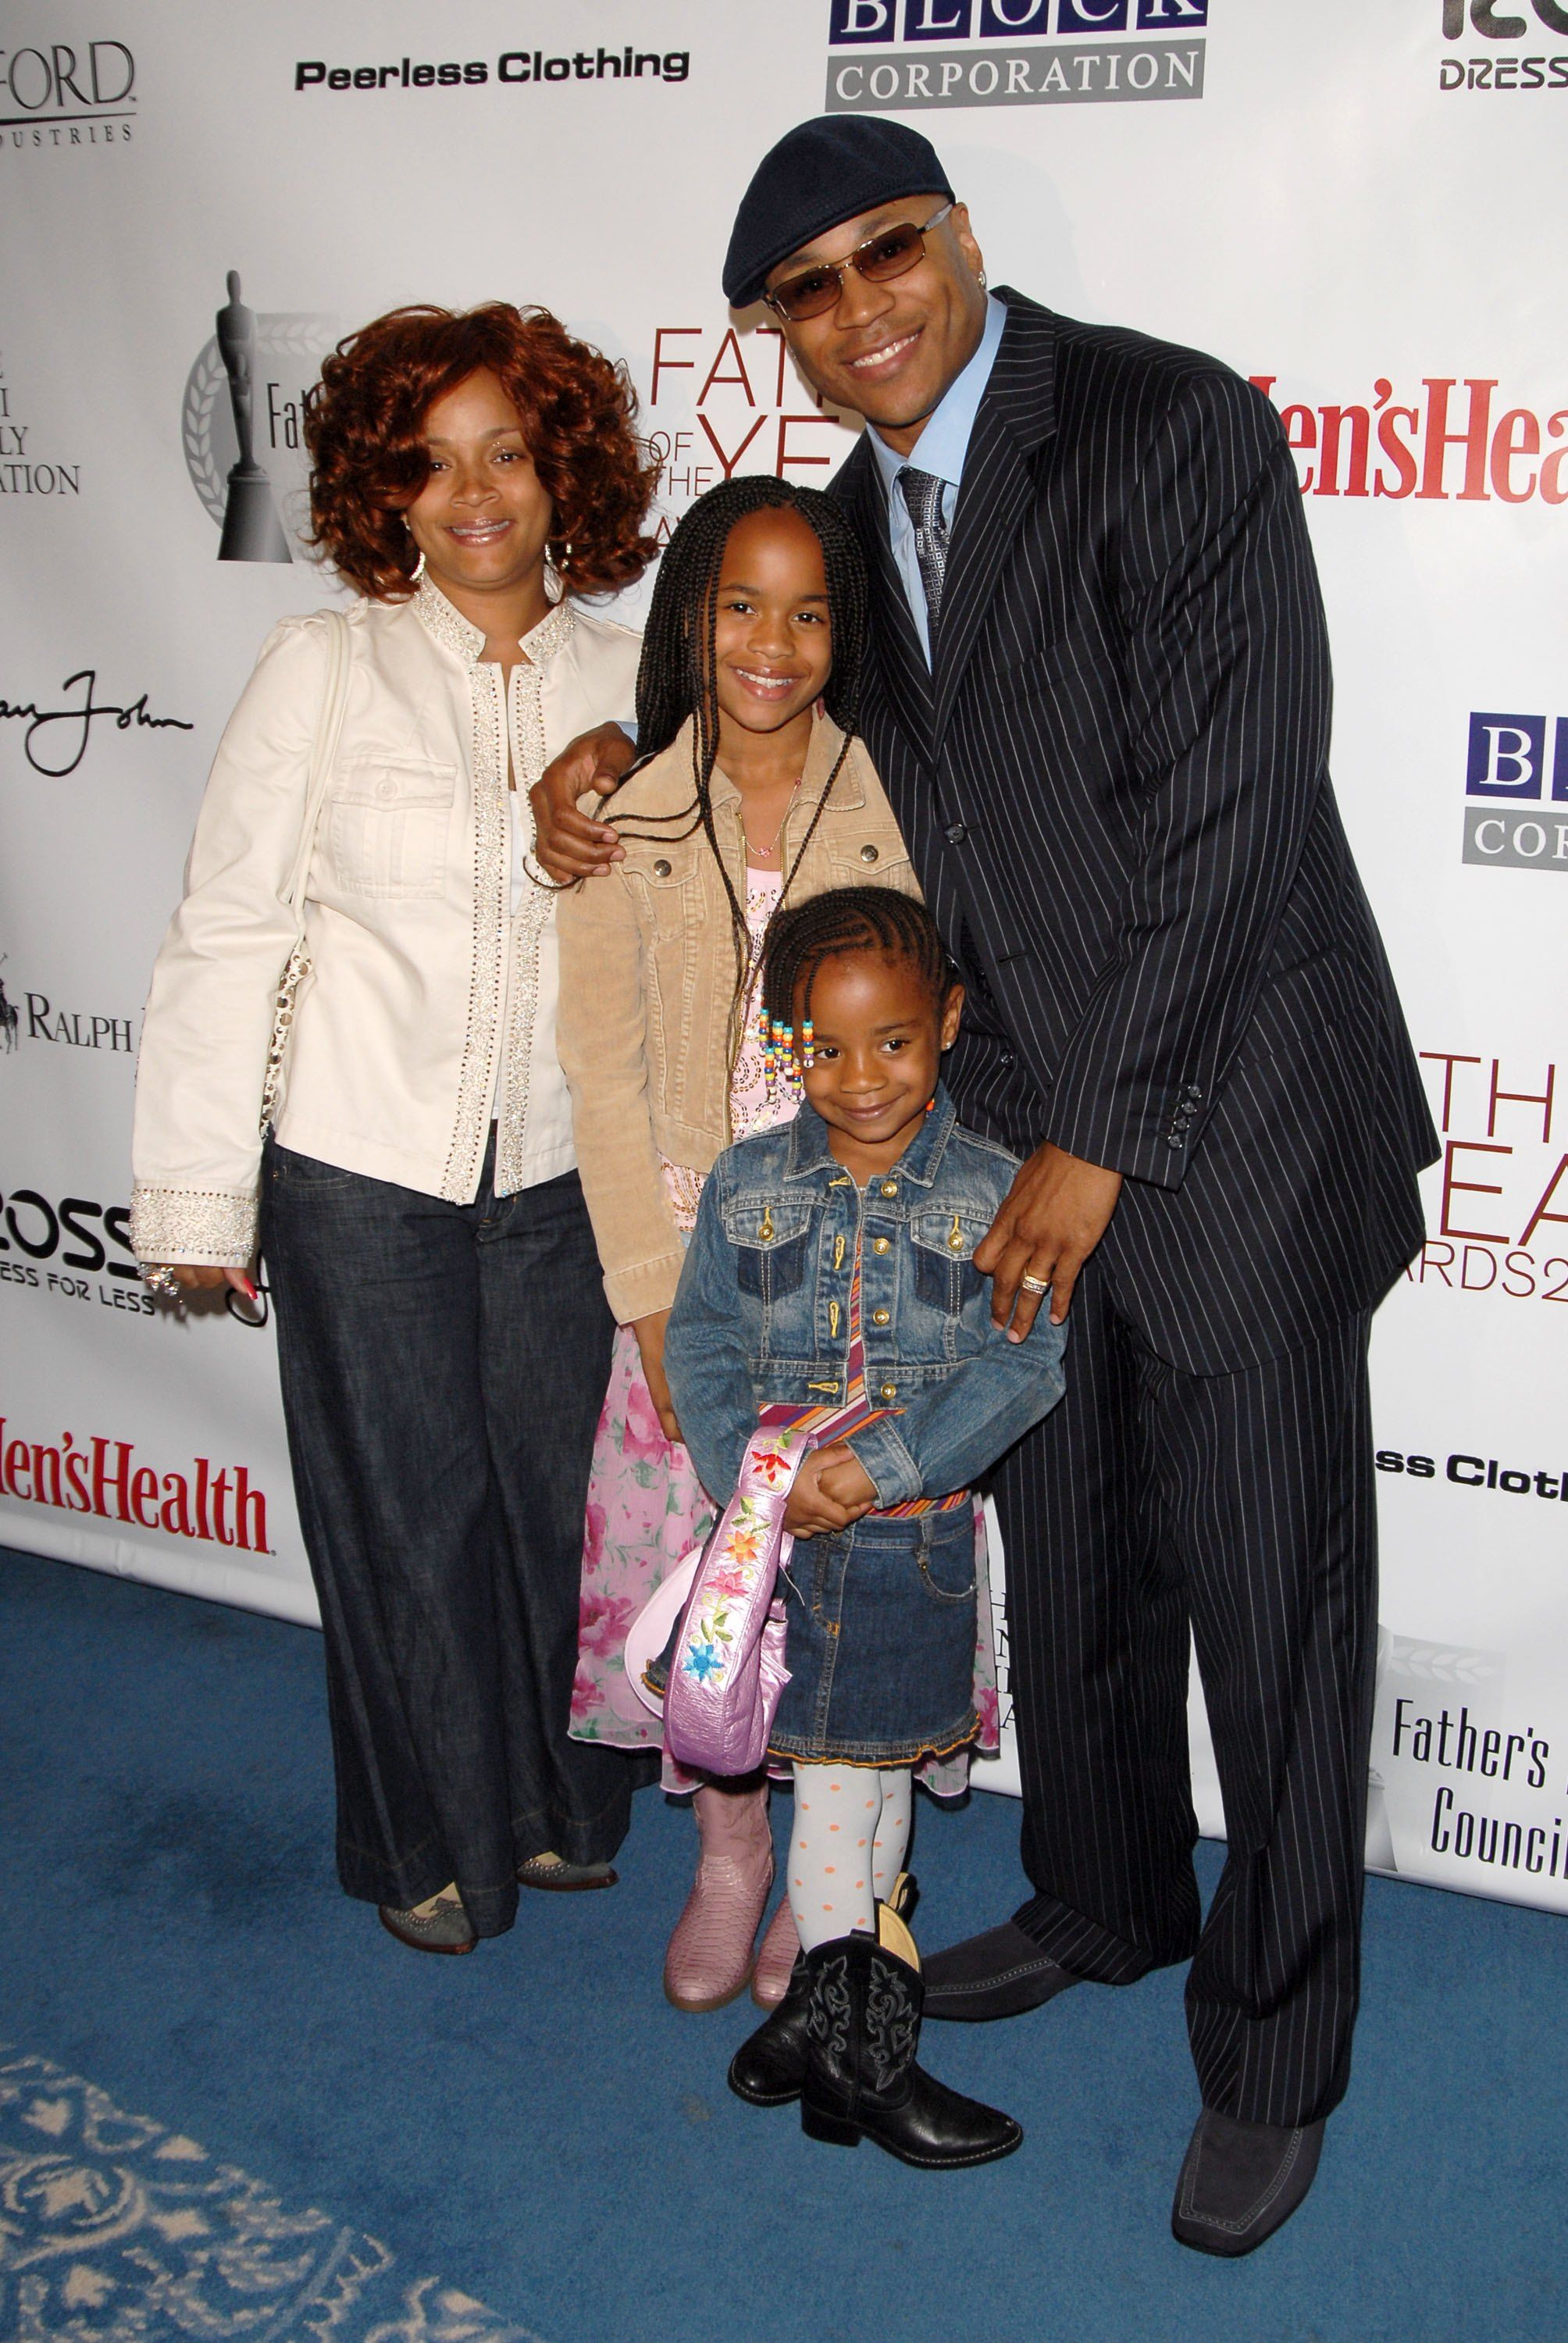 Rapper LL Cool J and family members attending the 65th Annual Father of the Year Awards on June 8, 2006 in NY. | Photo: Getty Images